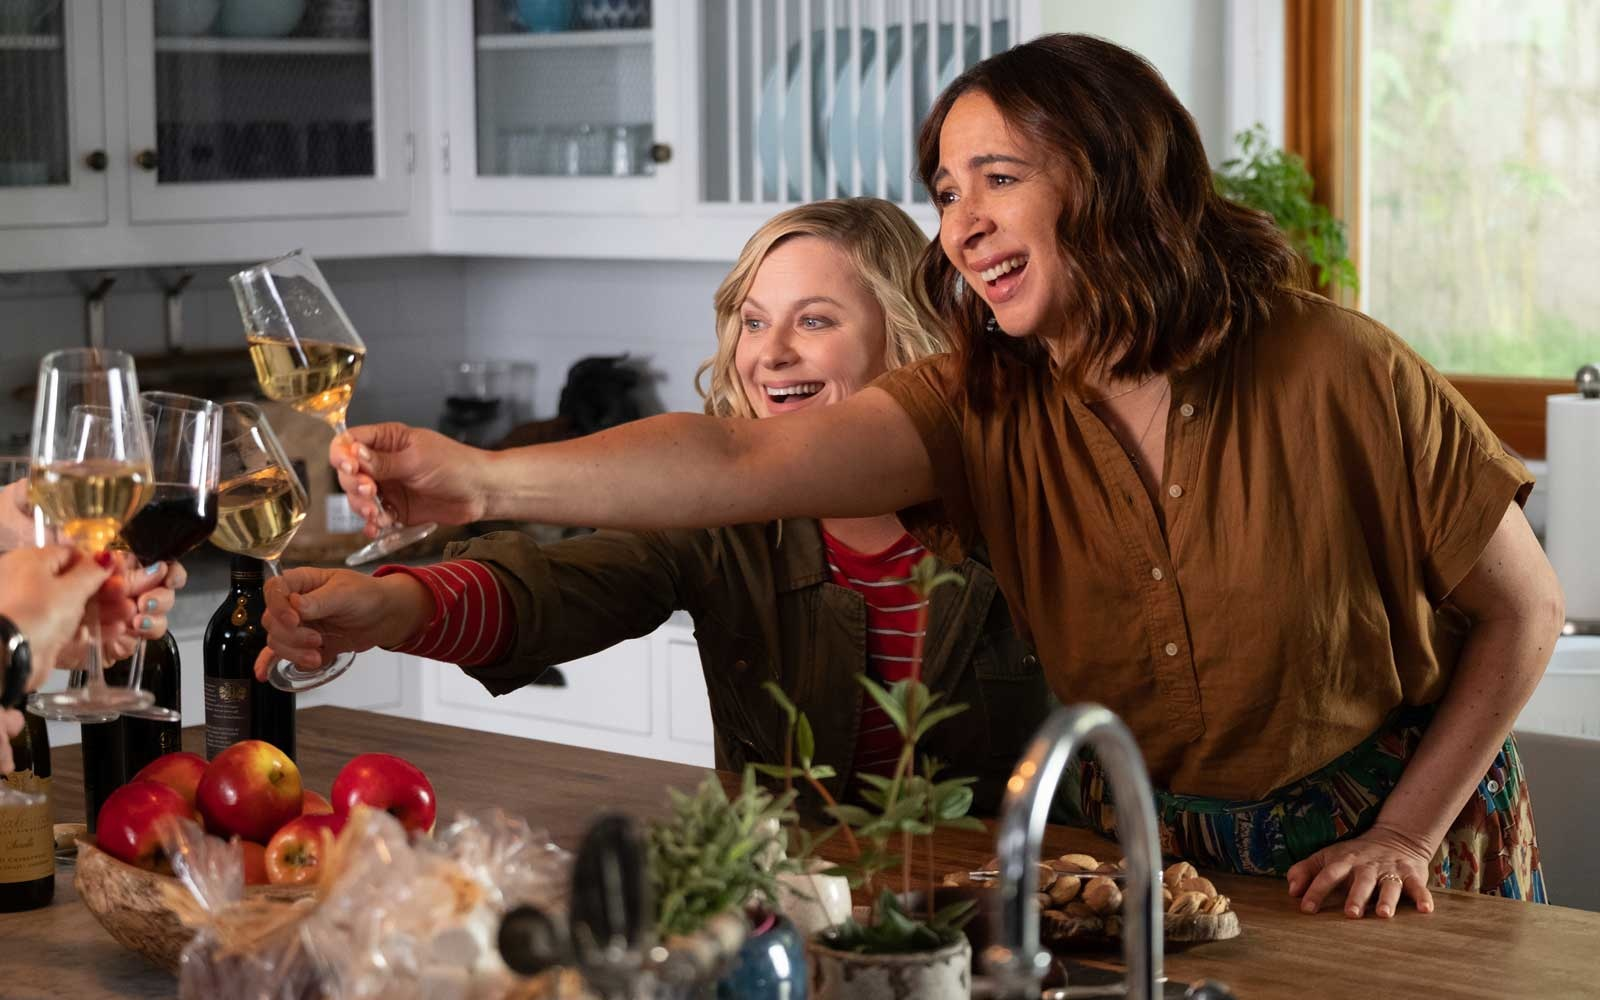 Wine Country: trailer arrives for Amy Poehler's upcoming Netflix comedy movie""